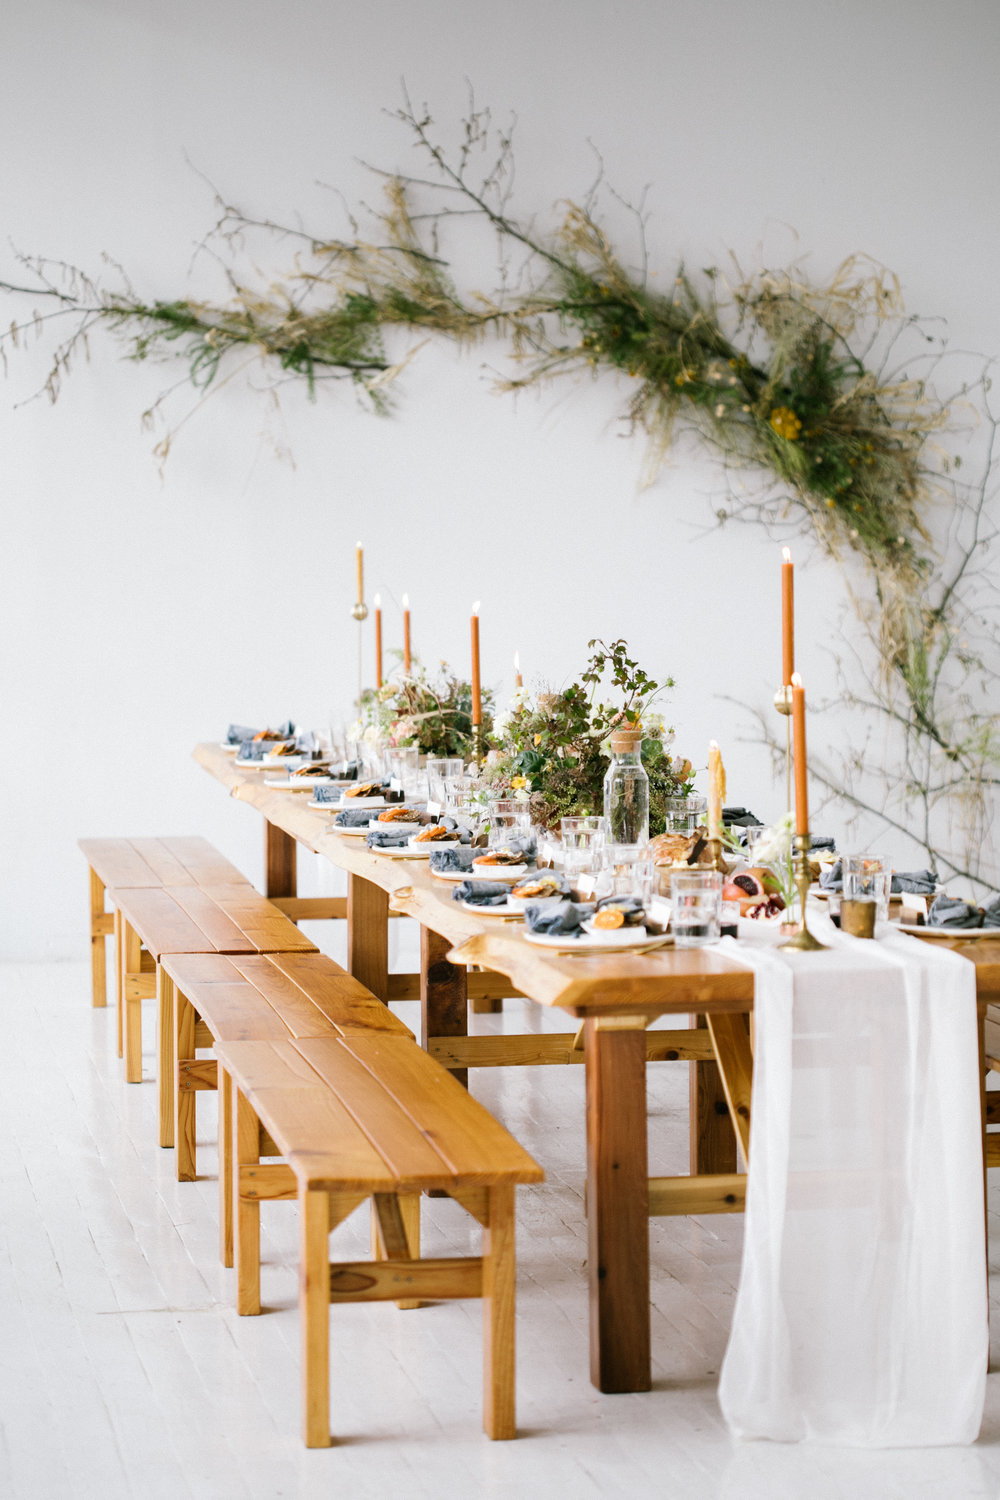 Photography by  Angela Carlyle  Design, Food & Flowers by  Teressa Johnson